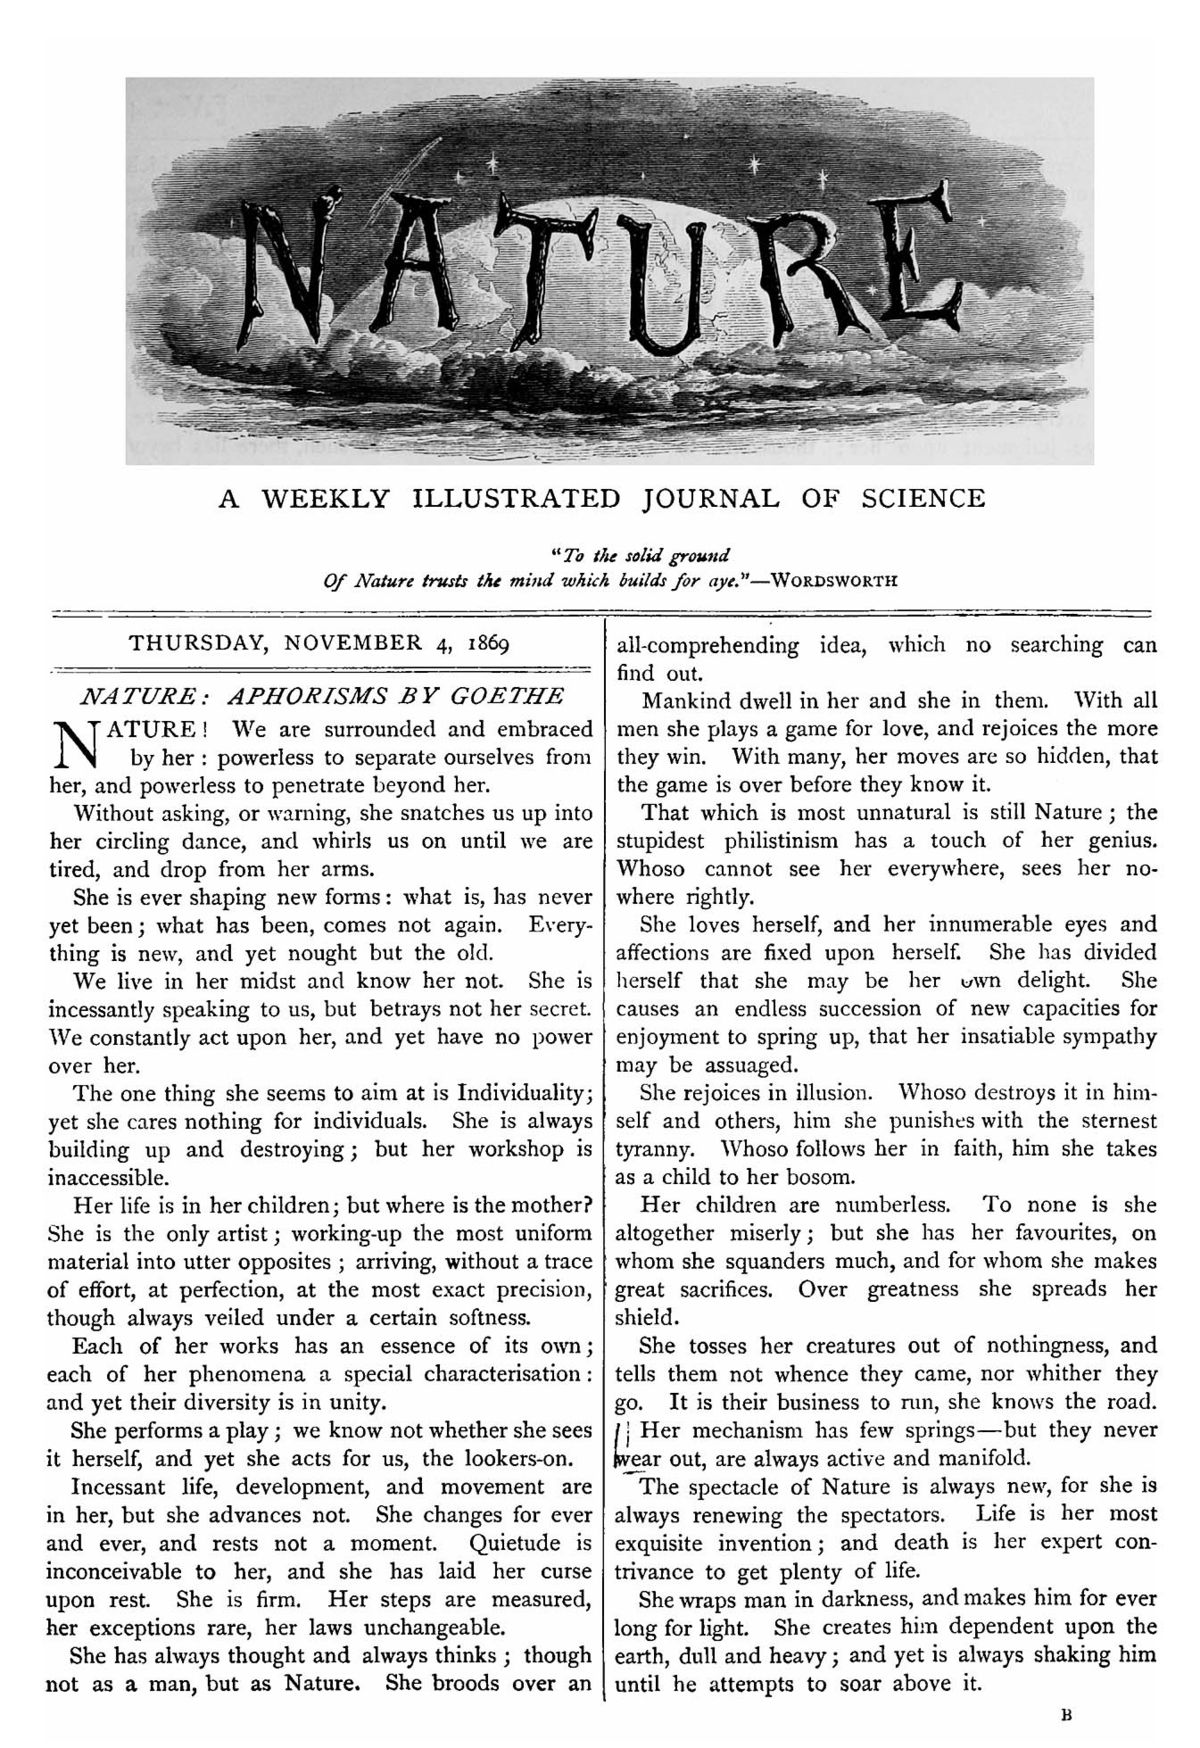 005 Best Journals To Publish Research Papers In Computer Science Paper 1200px Nature Cover2c November 42c 1869 Astounding Full